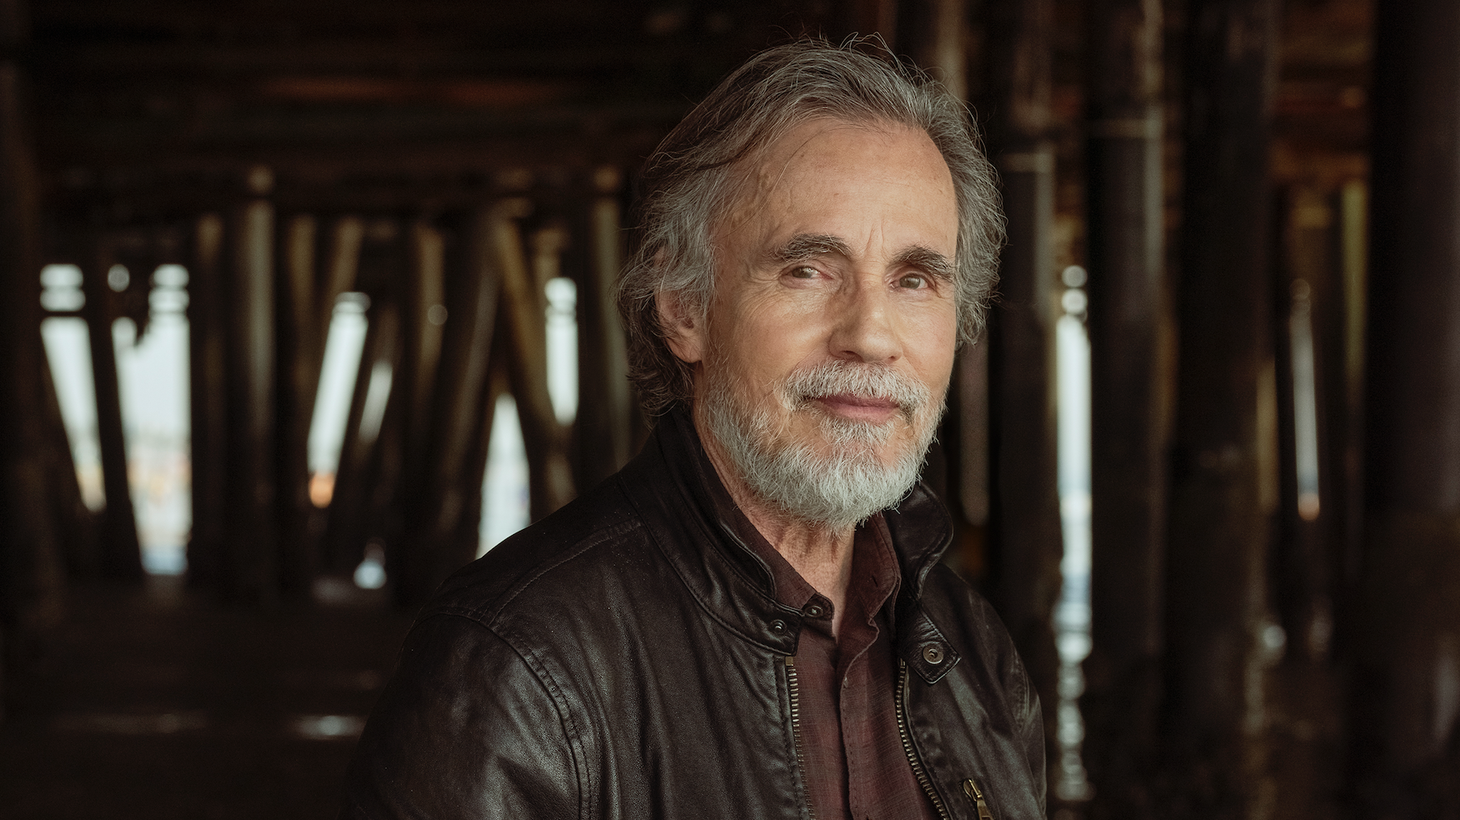 """Jackson Browne's latest album includes a song titled """"A Human Touch."""" He says, """"The real thing at play in the song is our compassion for one another, and the ability to recognize each other's humanity when in crisis."""""""